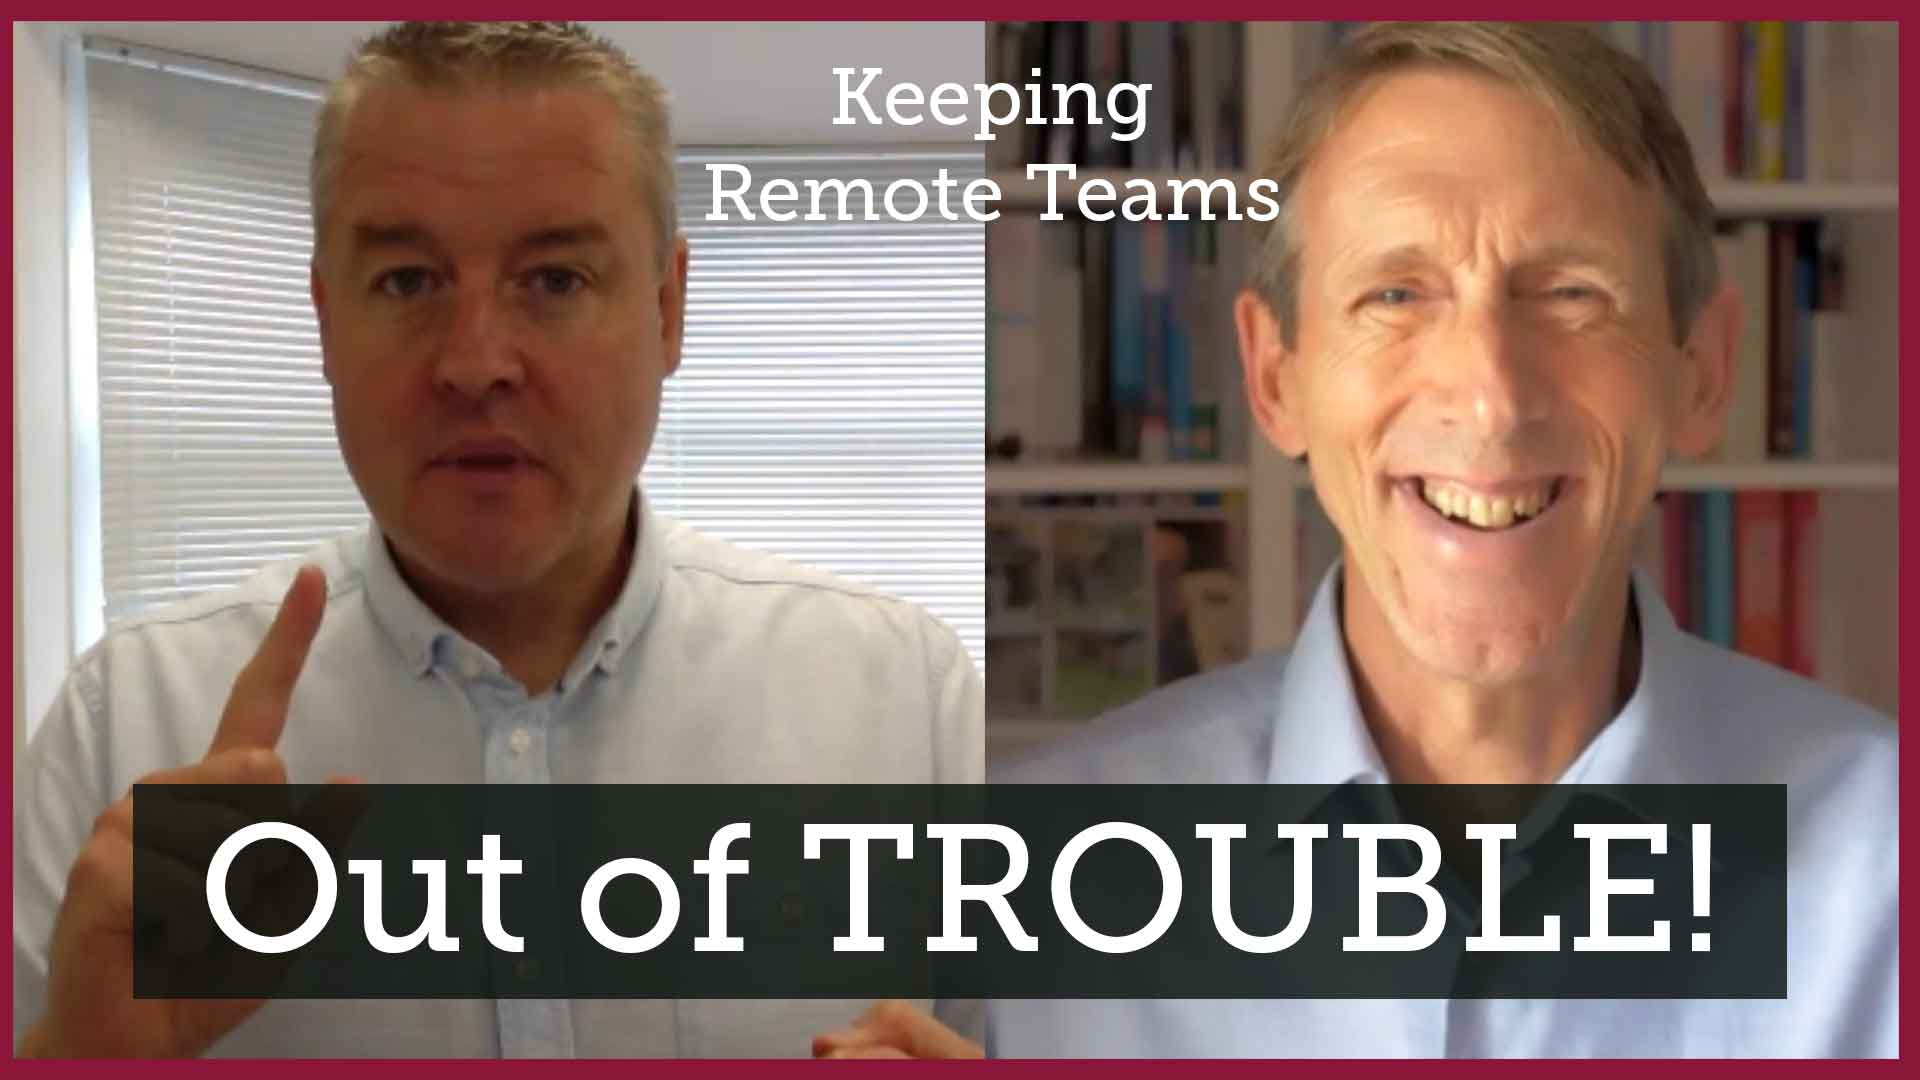 Keeping Remote Teams Out of Trouble